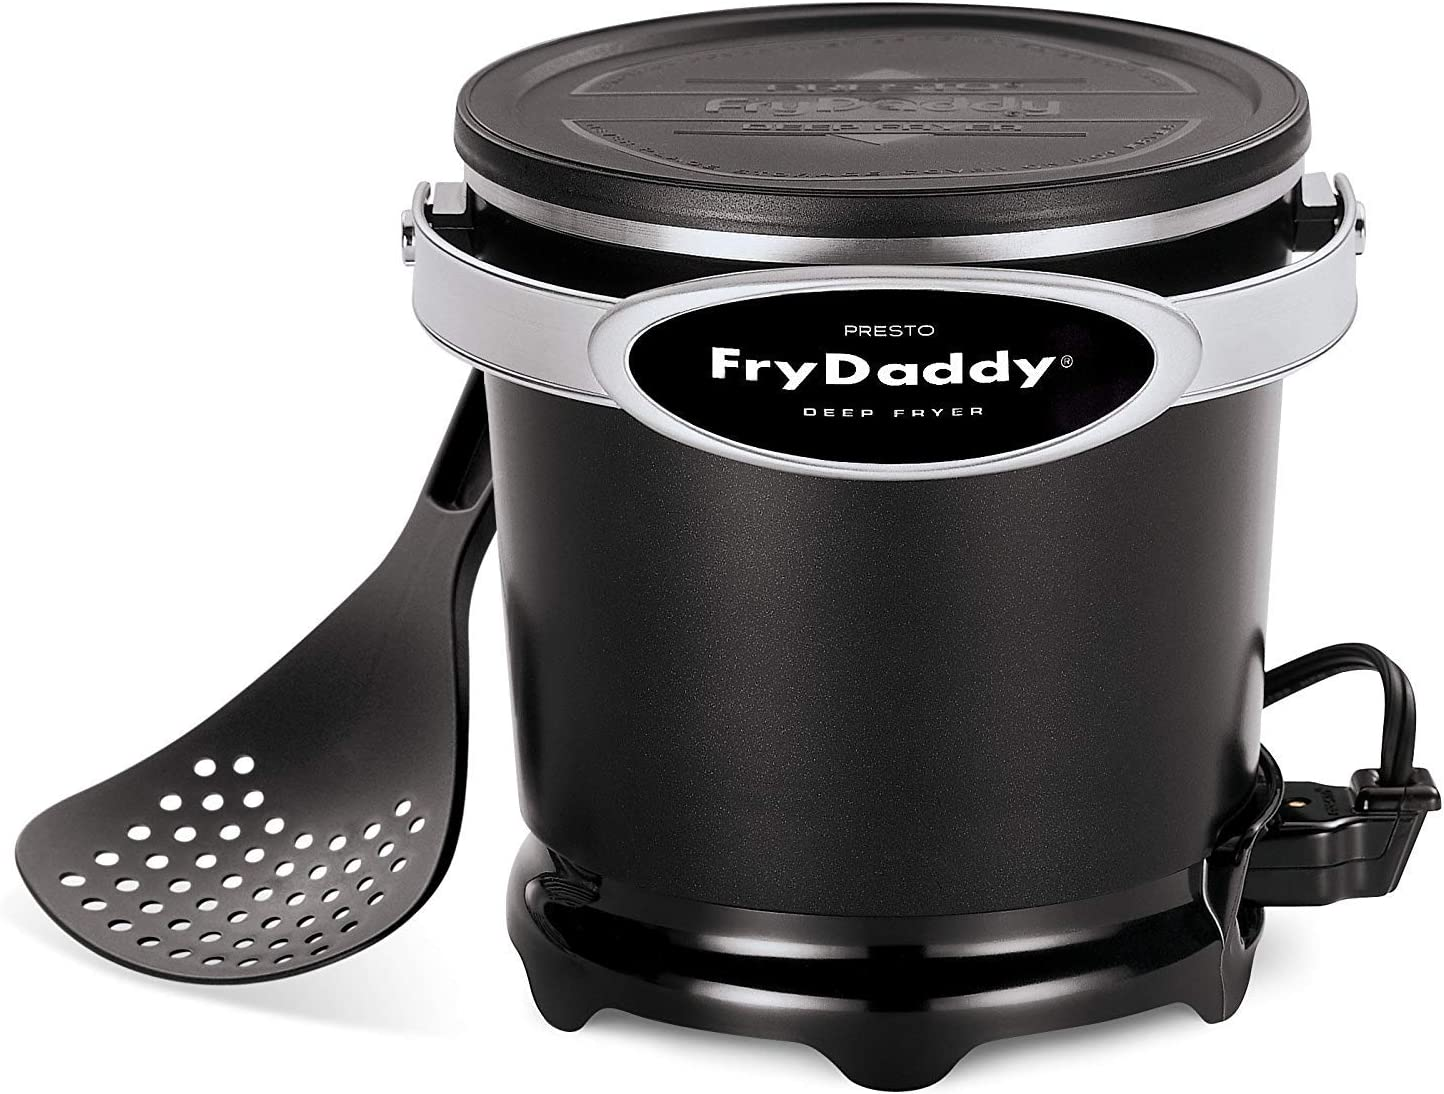 Presto All stores are sold Fry Daddy 4-Cup Surprise price Electric Fryer Deep